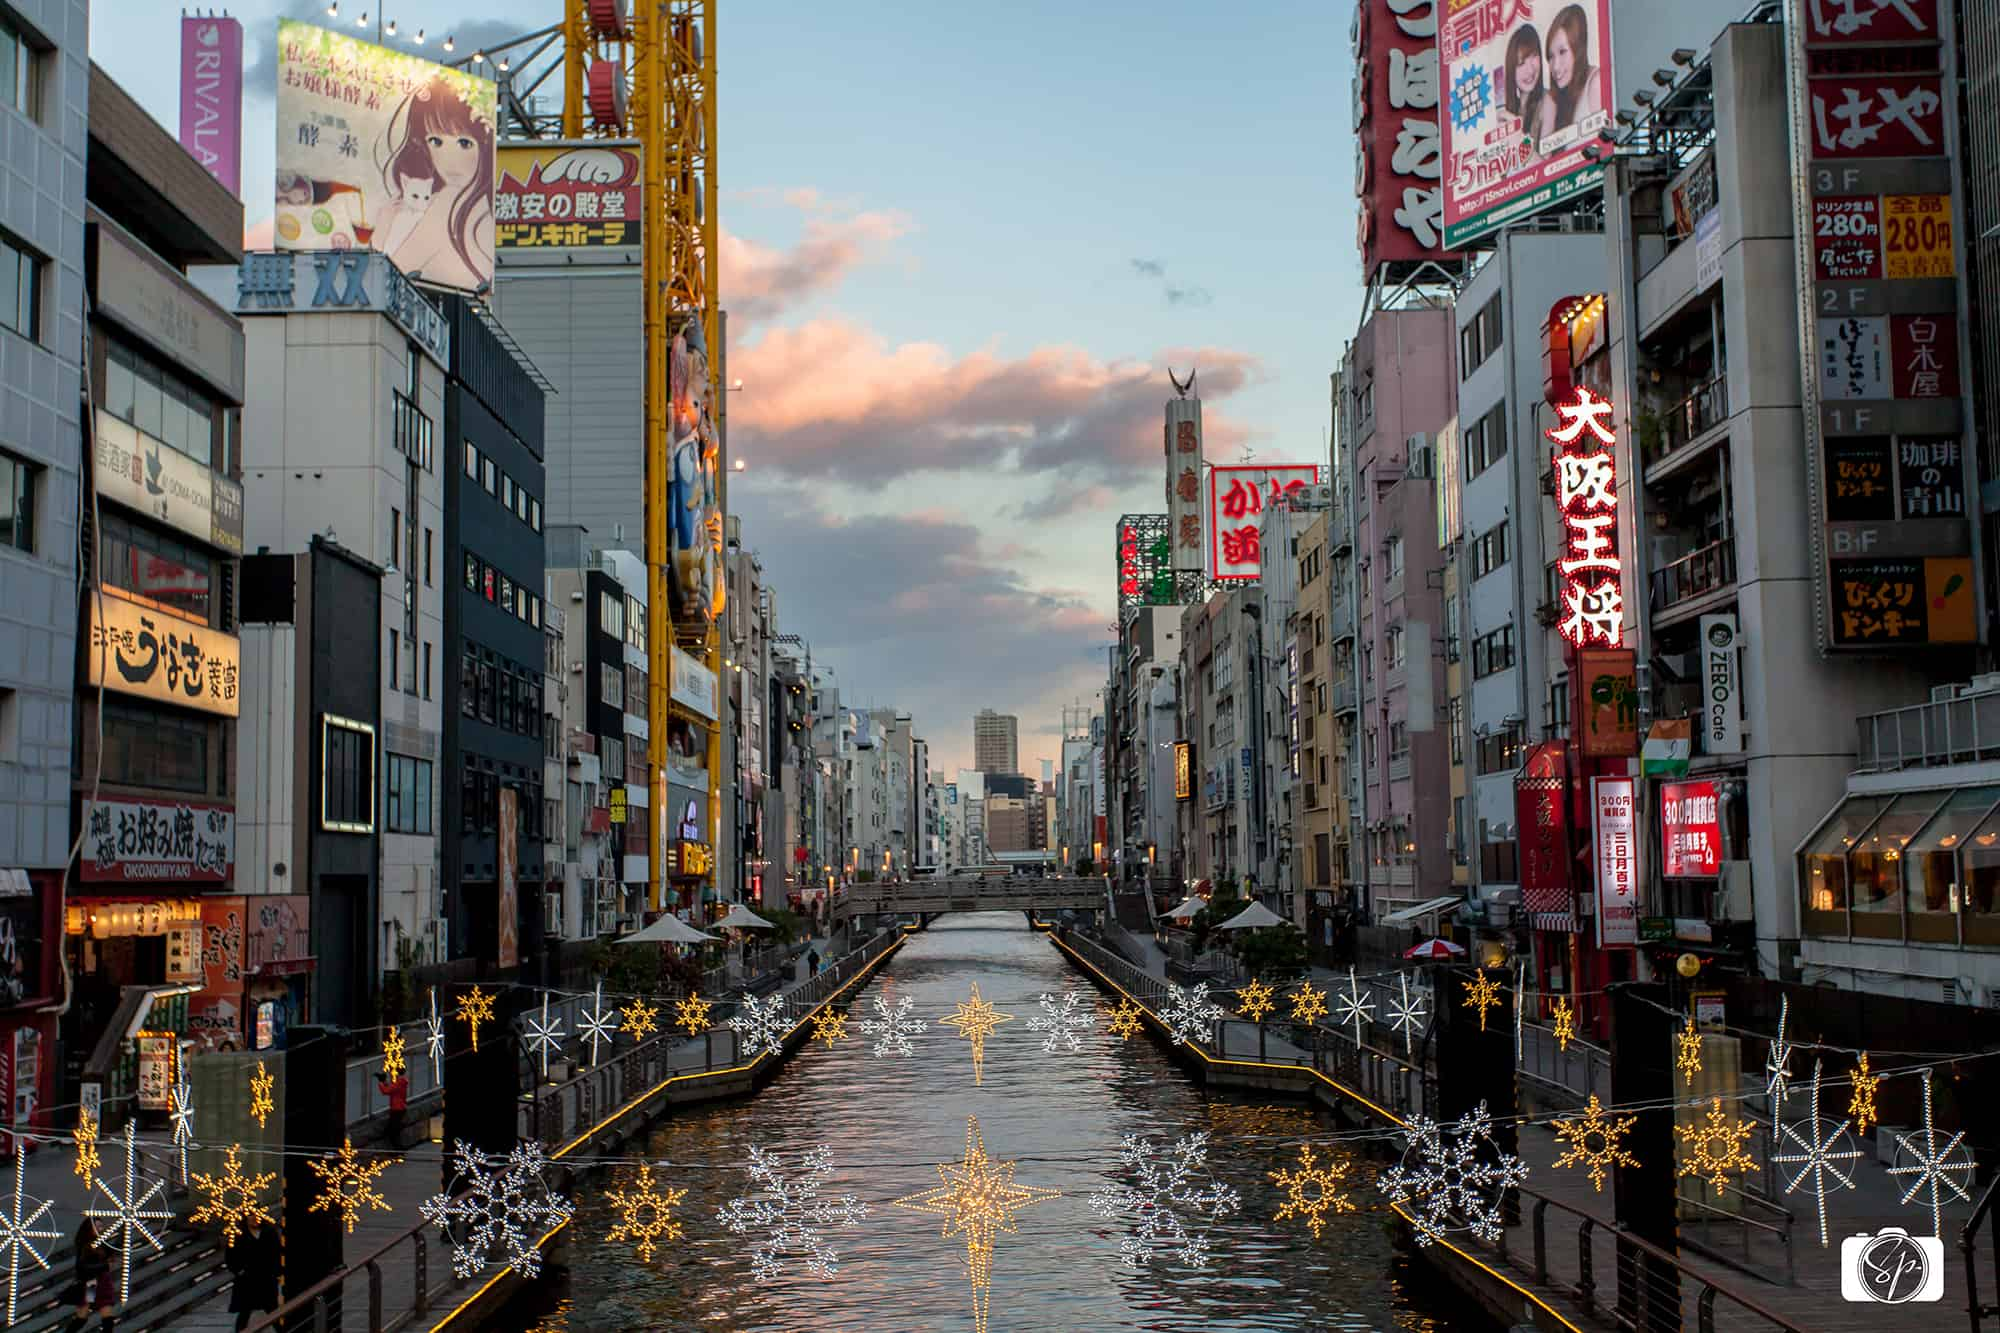 5 Awesome Things to Photograph in Osaka - Street Scenes